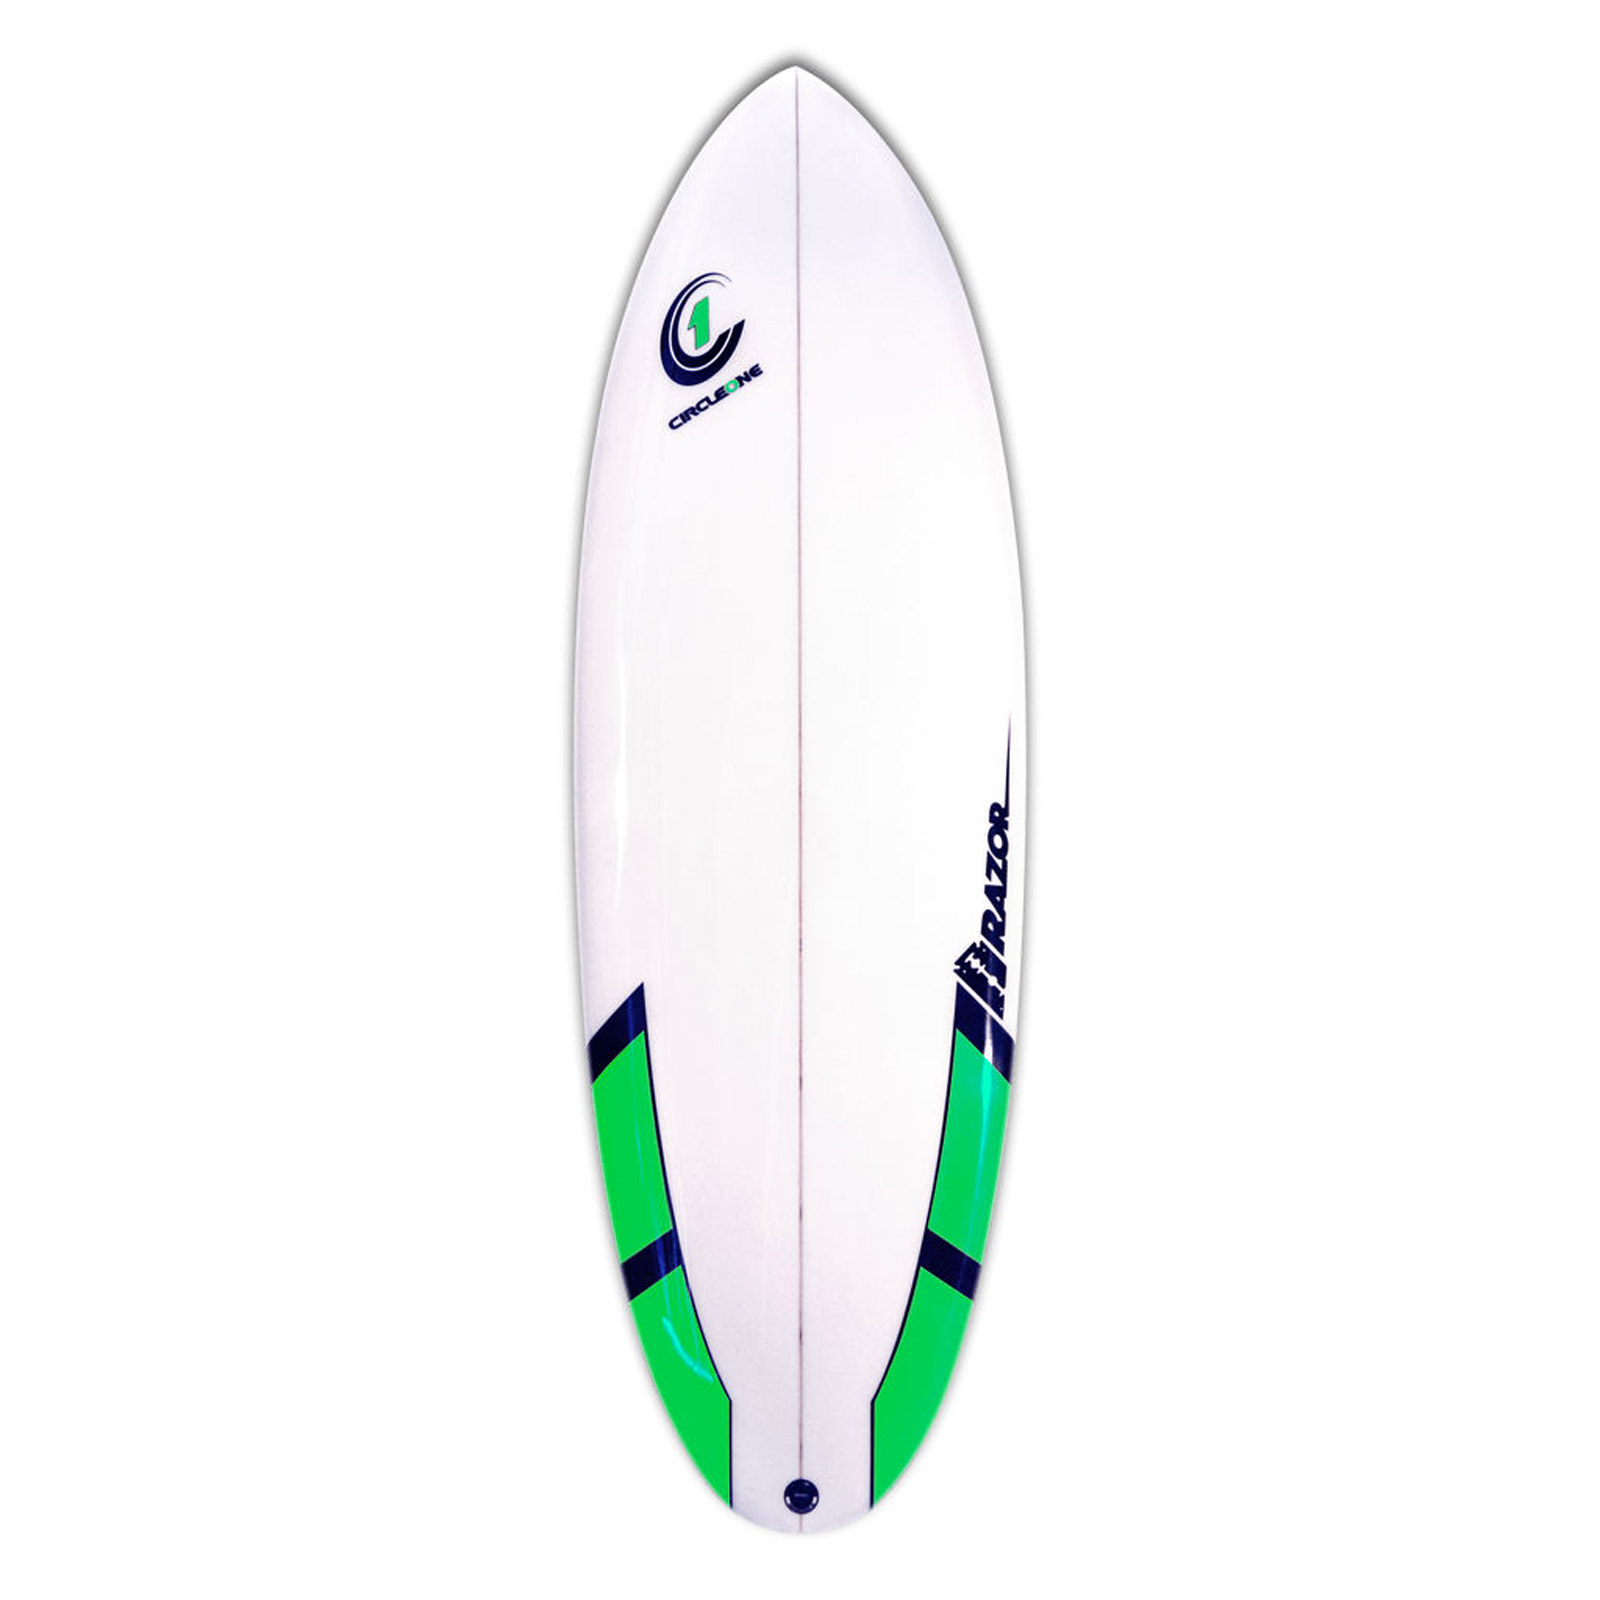 5ft 8inch Razor Surfboard - Round Tail Shortboard - Matt Finish